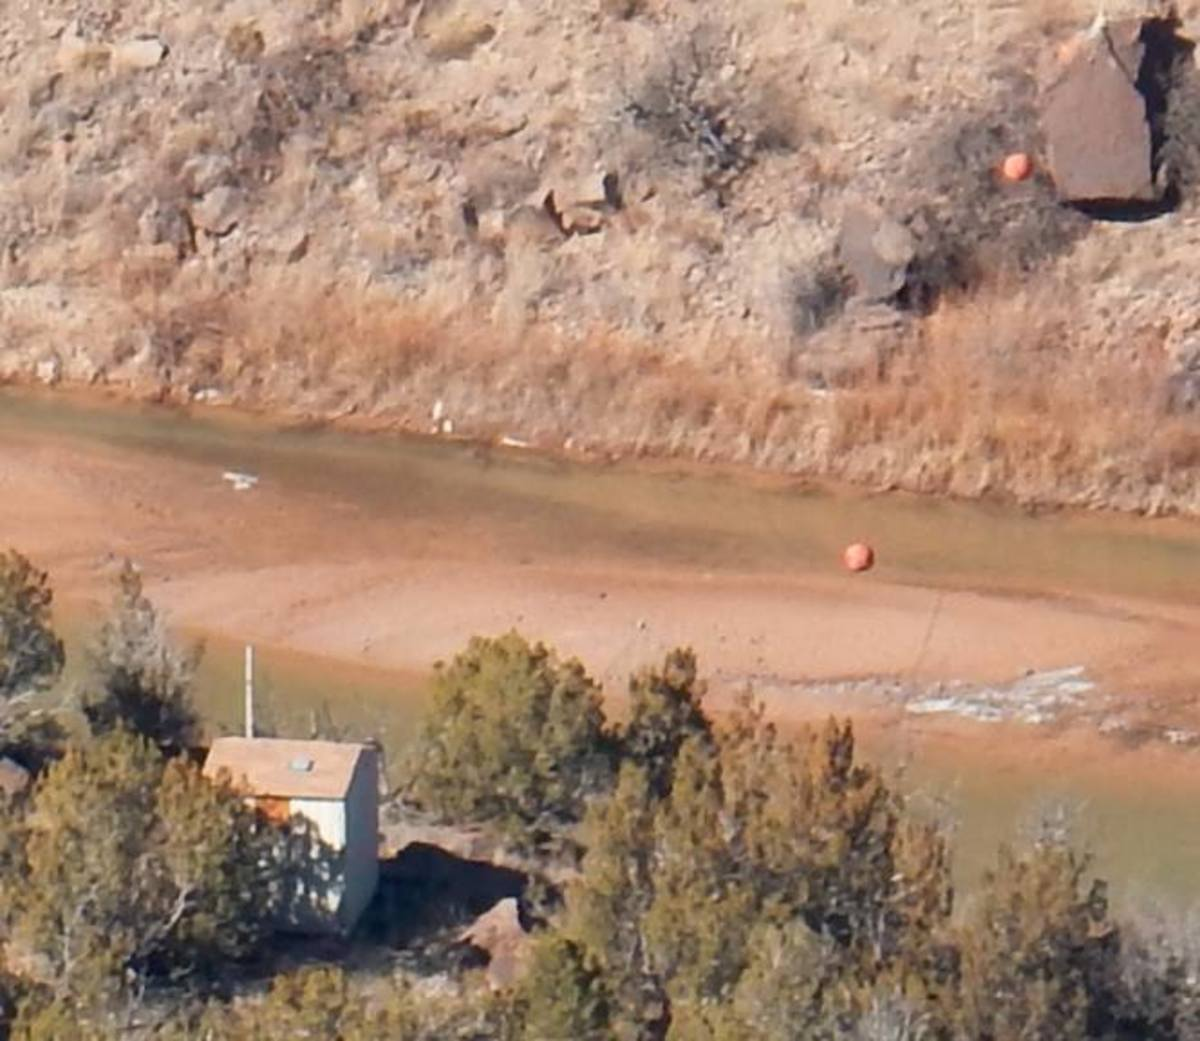 Coordinates 35.781082 -106.205805 Located a mile up river from the Ancho Canyon. We hope this area is searched soon. Unsure if it has been searched yet. UPDATE: Searched and cleared.